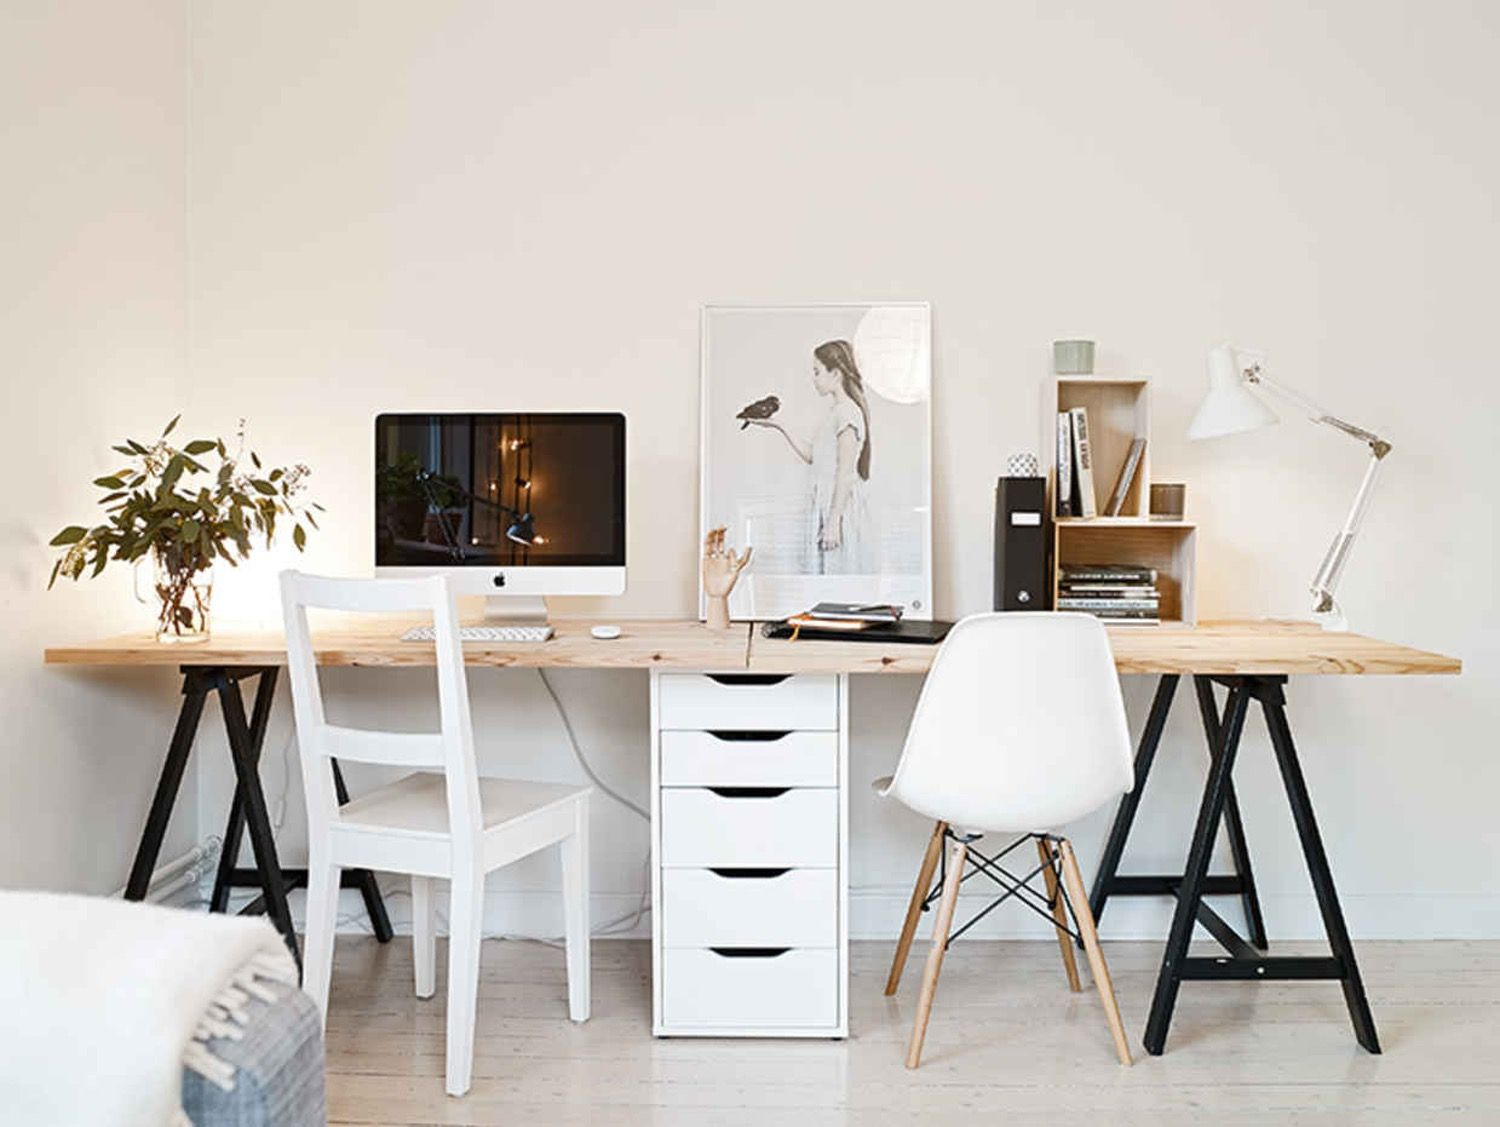 Diy desks you can make in less than a minute seriously! bureau